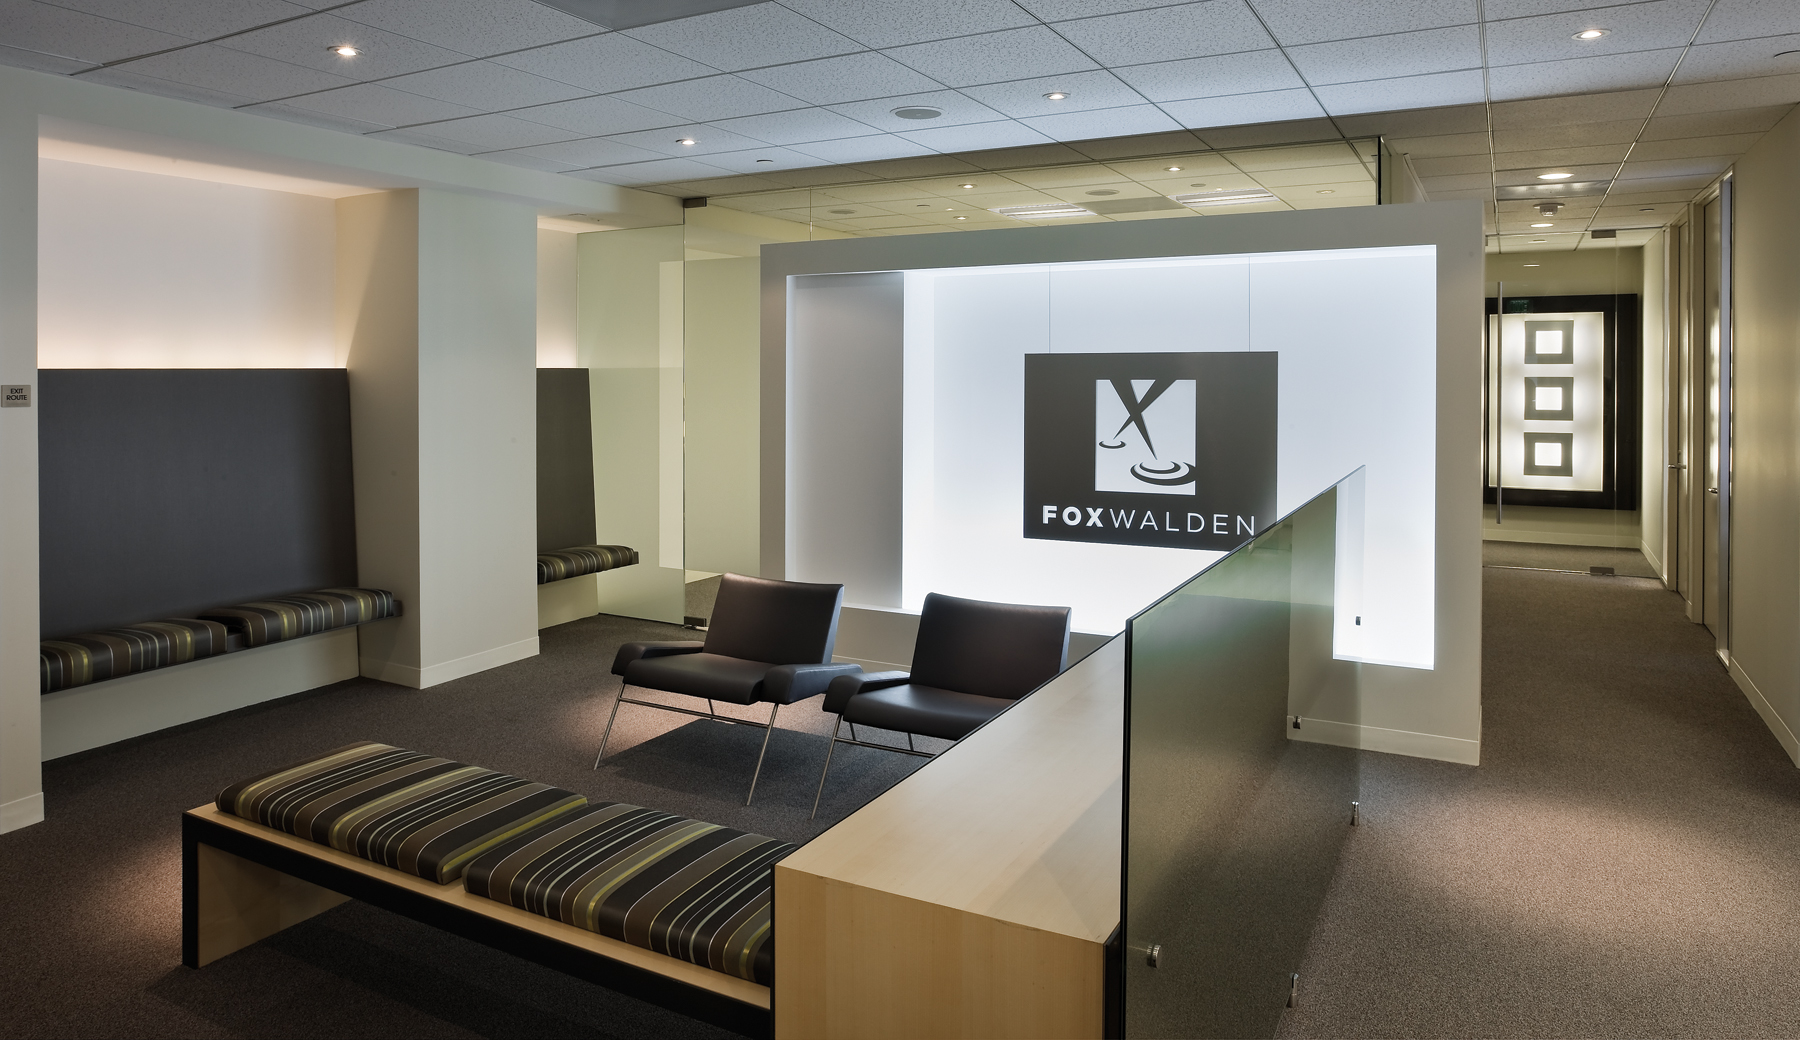 Epsteins project team provided full interior design services and lighting design for the 10000 square foot expansion of creative office space on the 10th